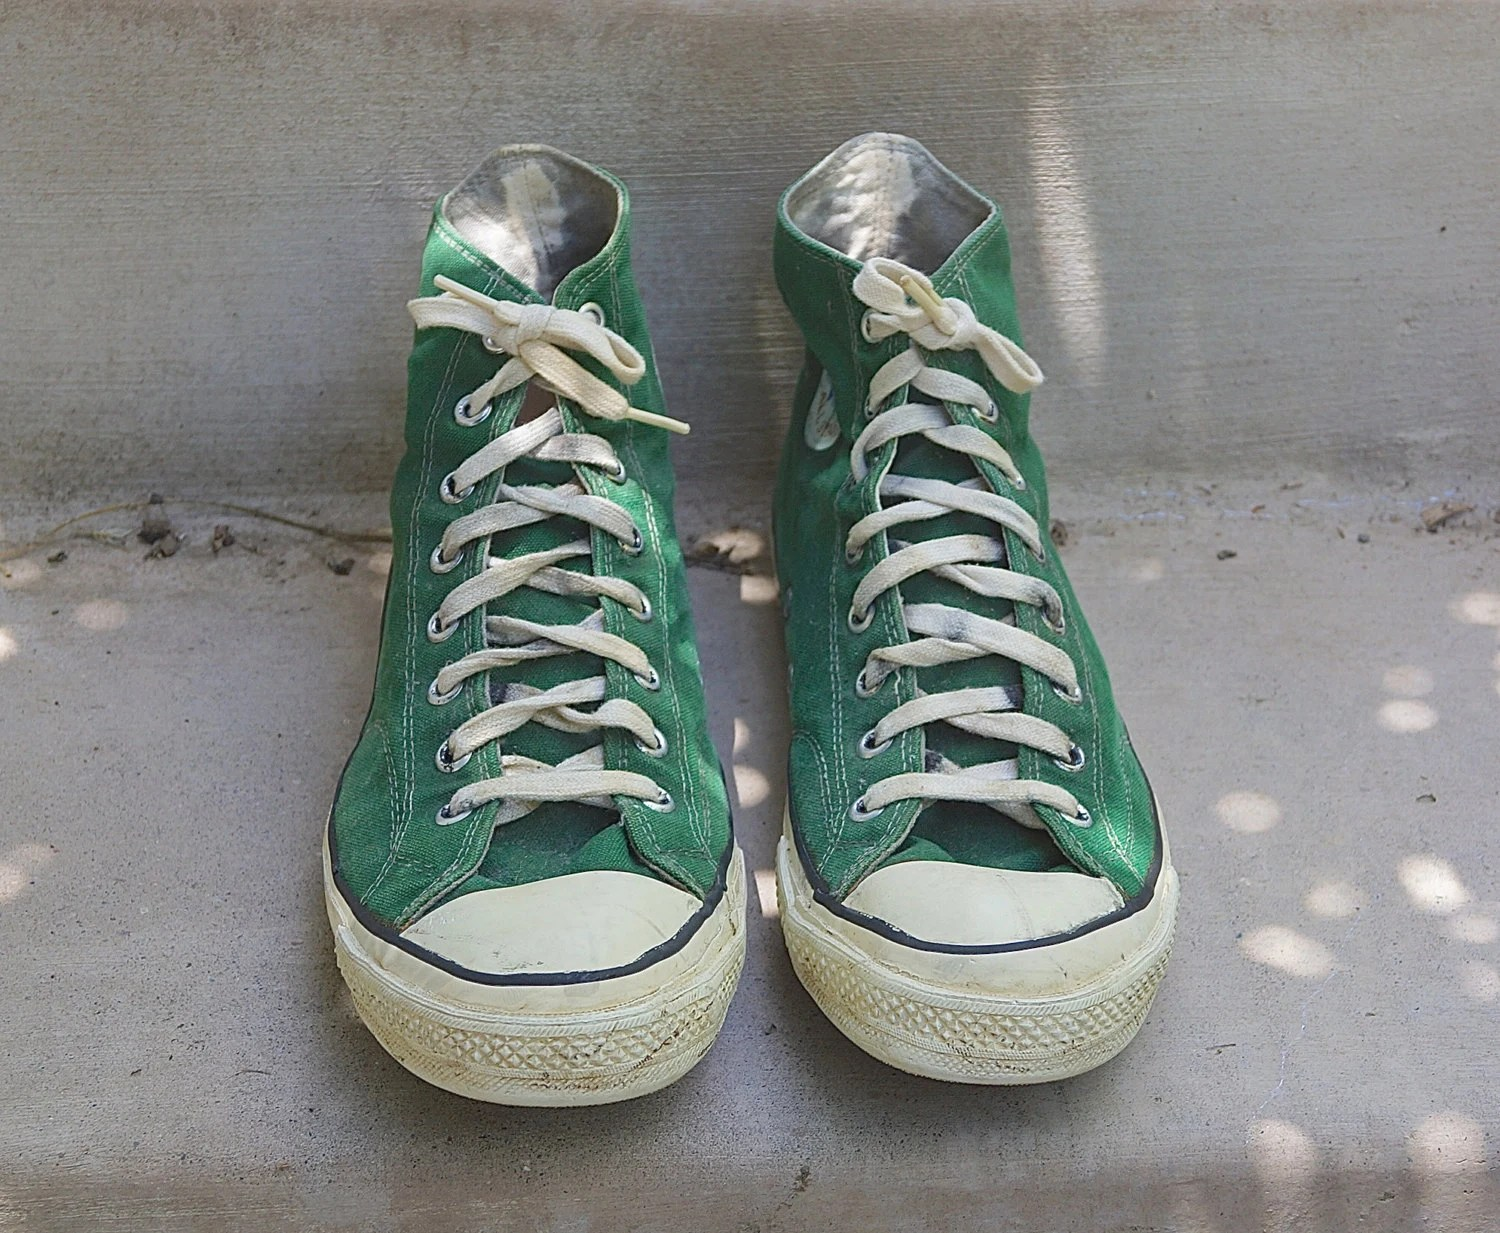 Men Star Black Static And Converse All Sneakers Mid Top Green